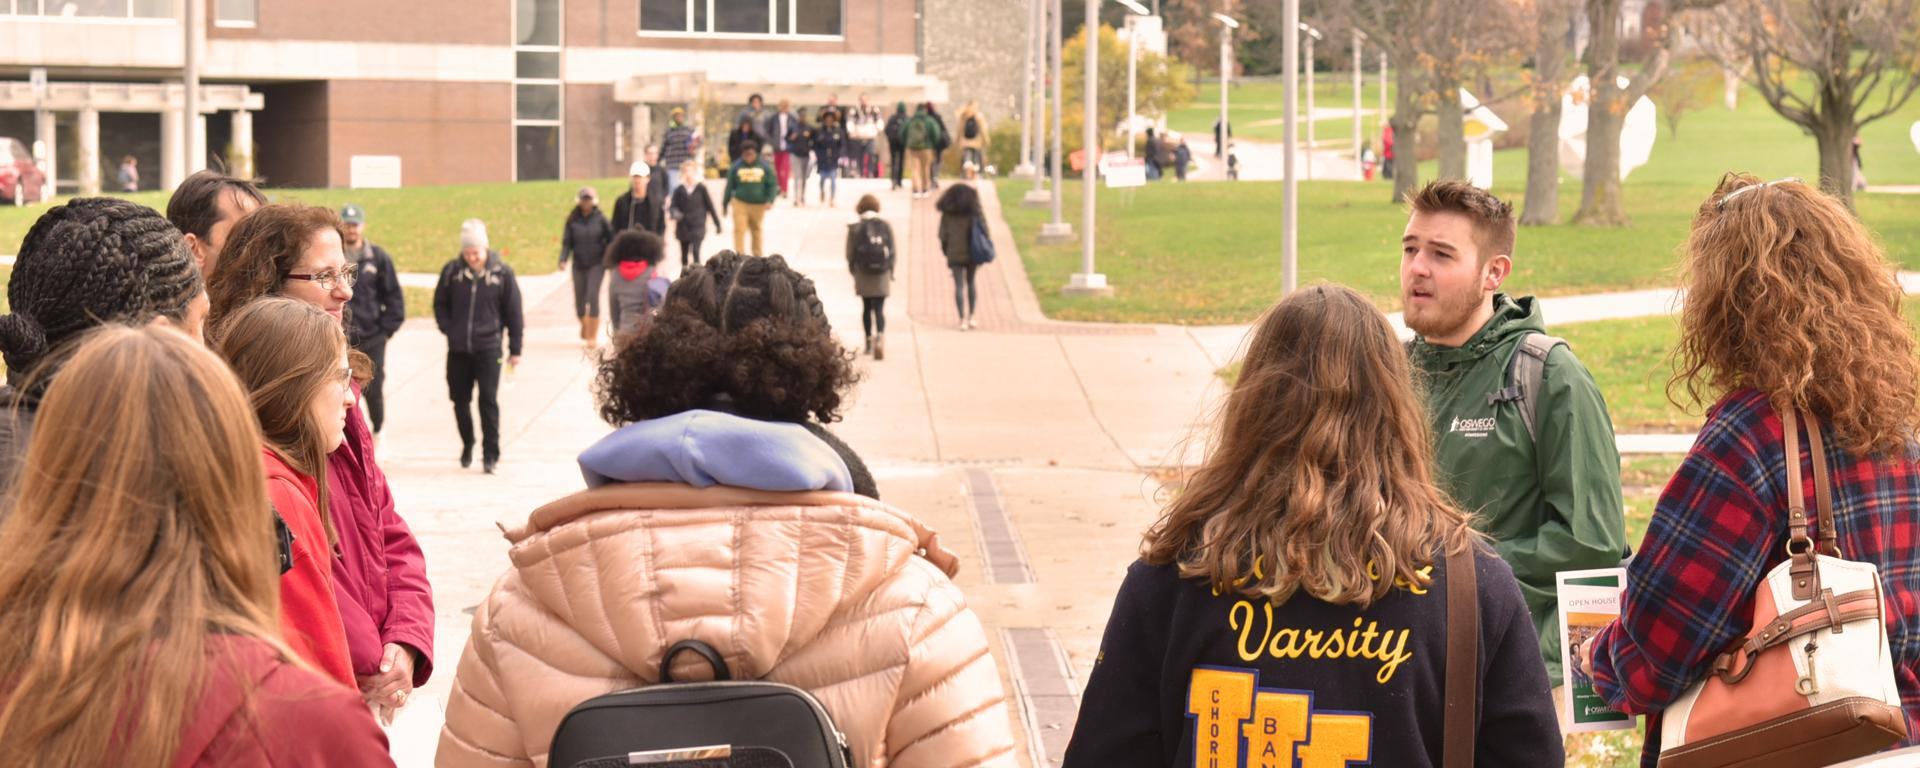 Future students, families explore campus during an open house